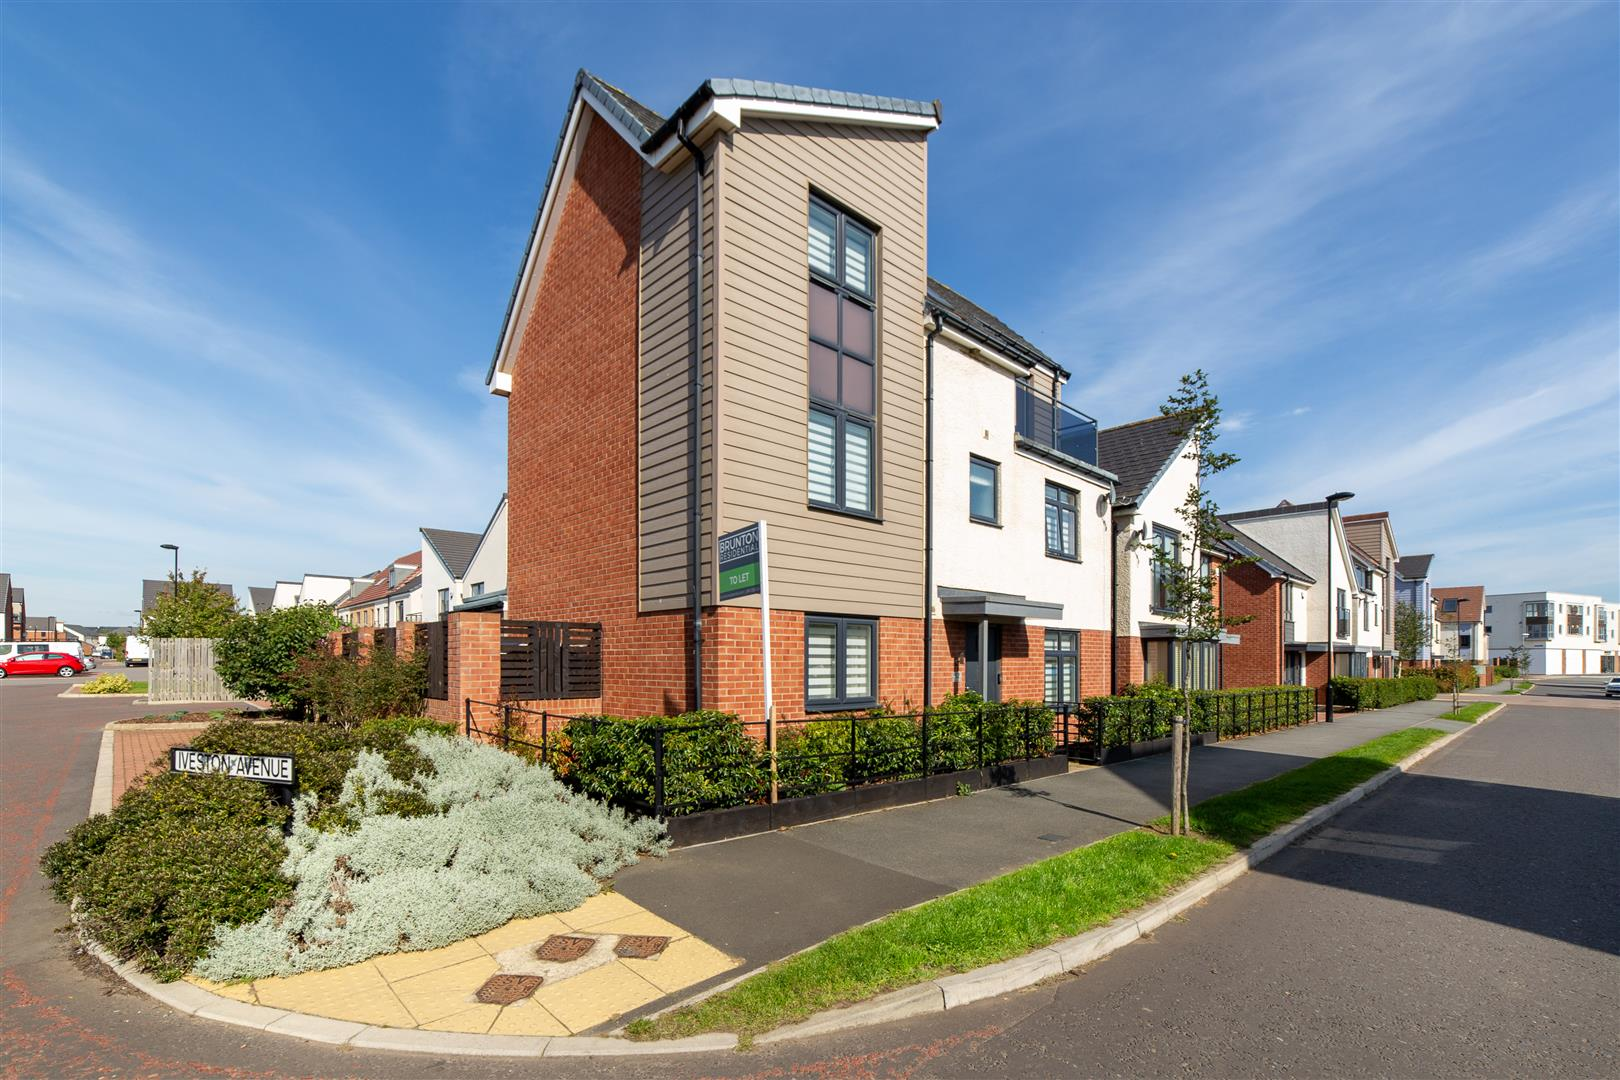 4 bed detached house to rent in Newcastle upon Tyne, NE13 9BQ  - Property Image 1